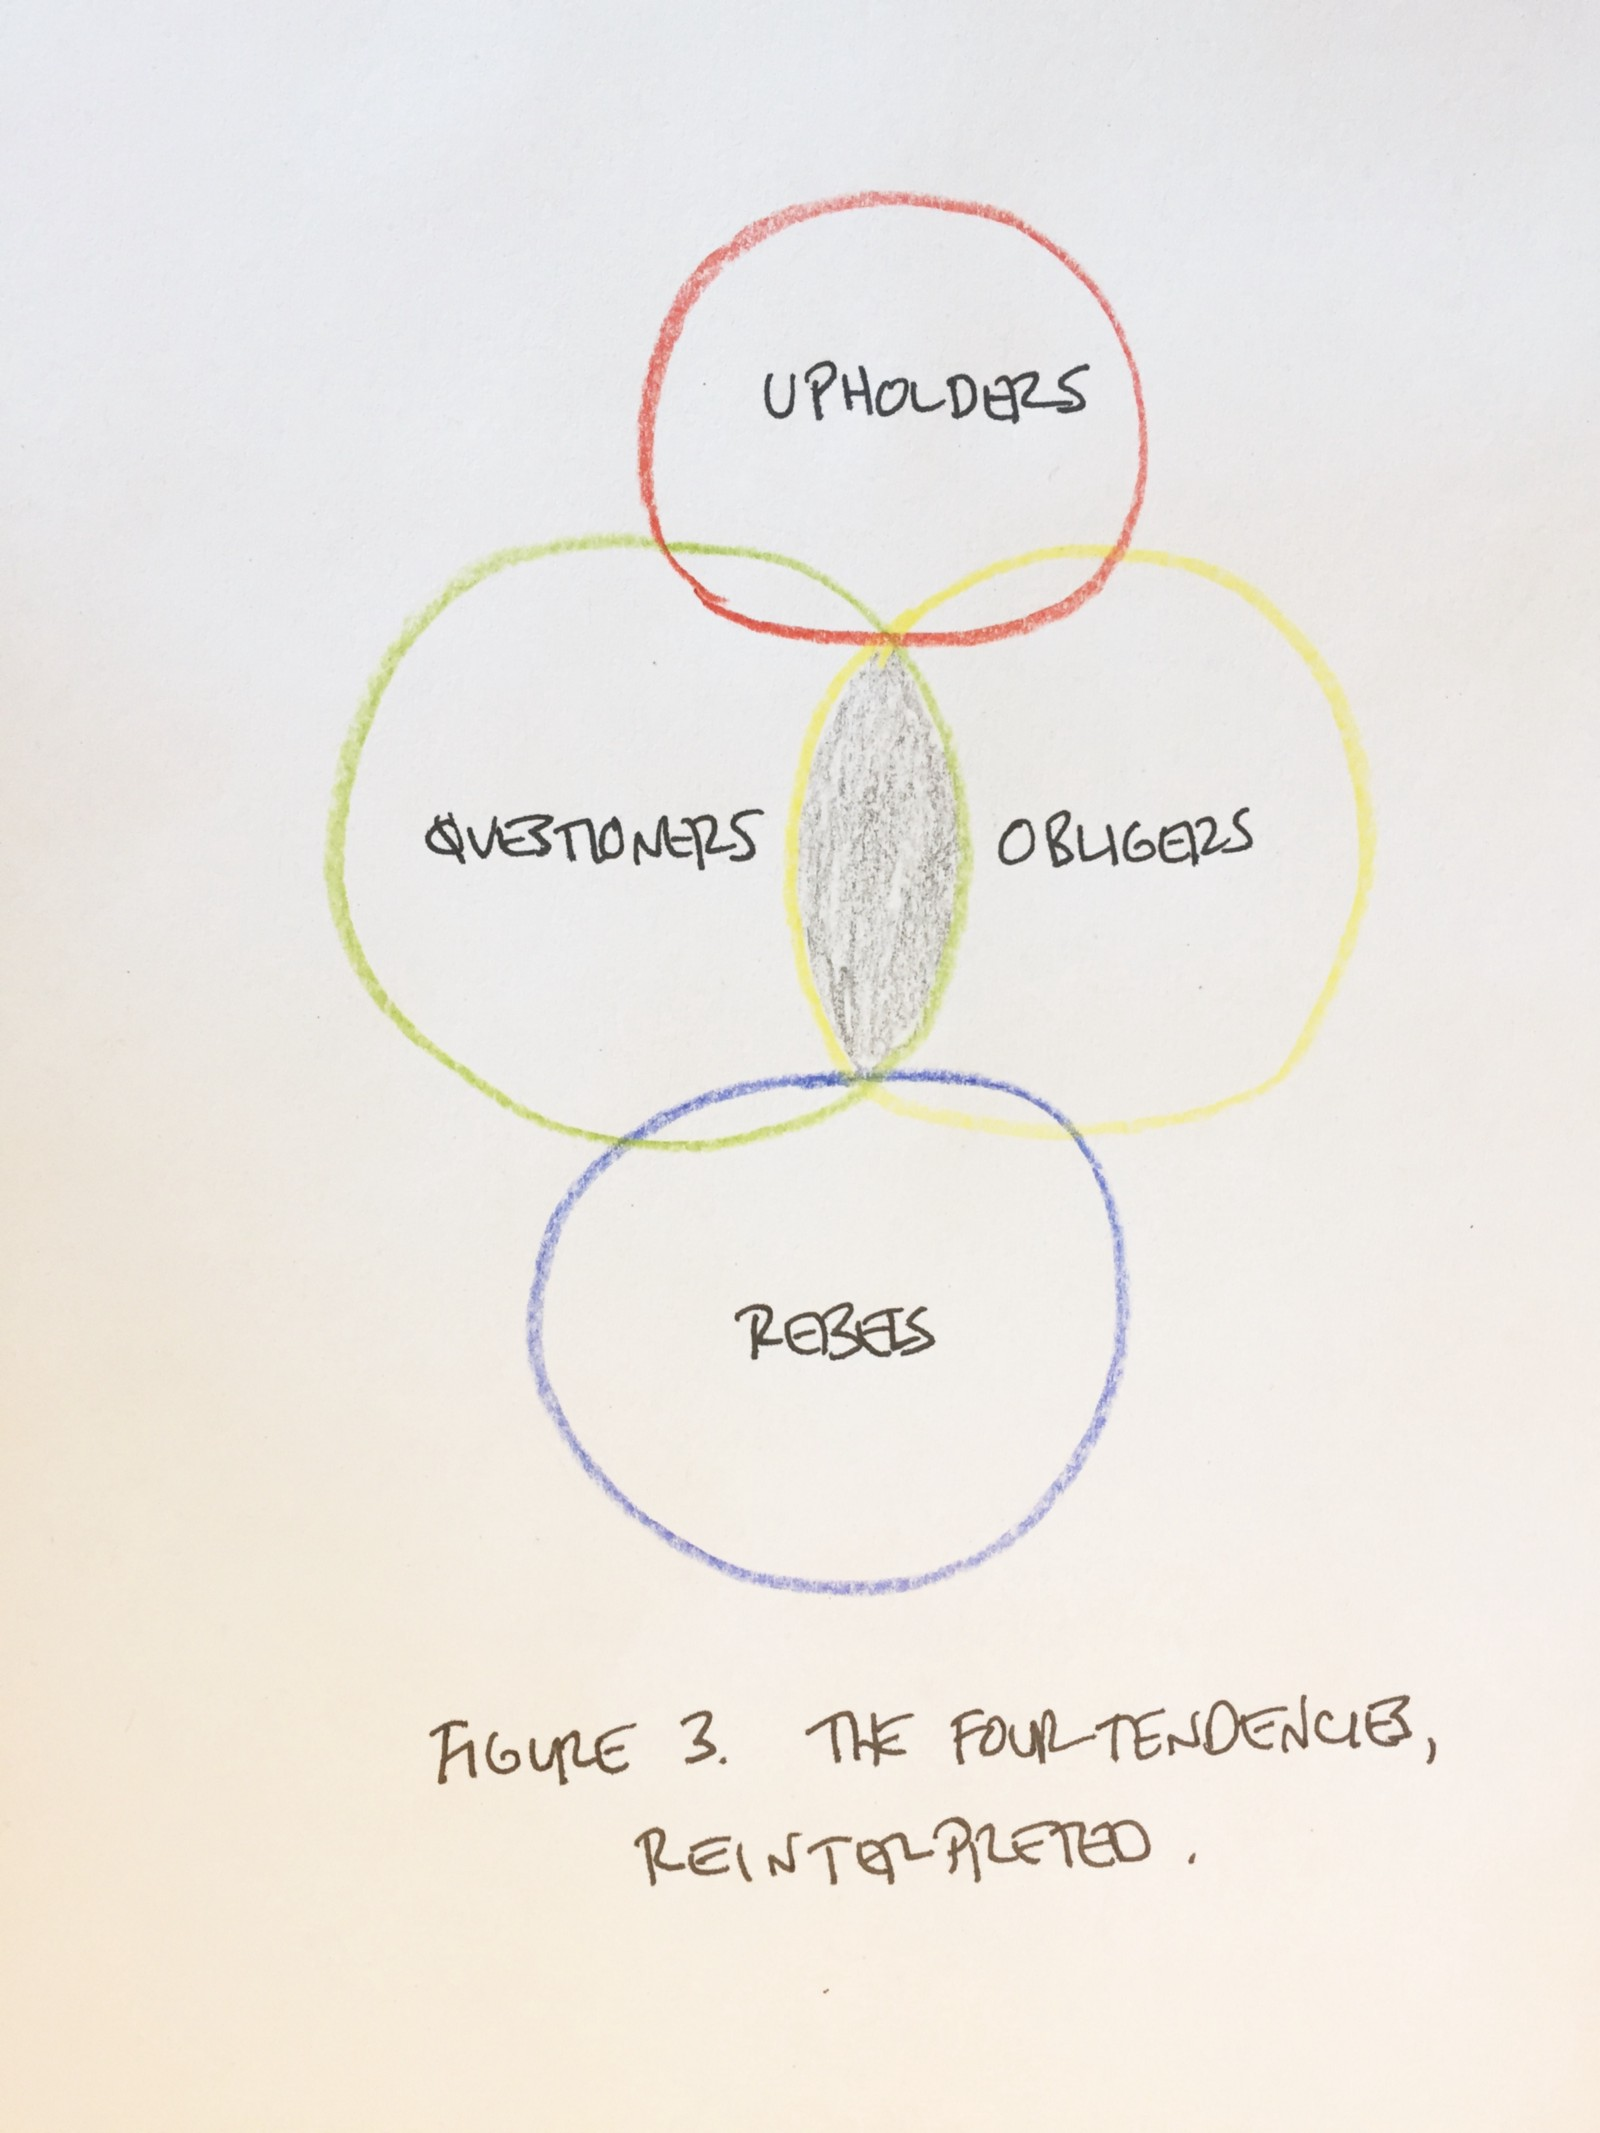 The expectation field a different take on the four tendencies in this version the gray overlap between obligers and questioners represents the space where we havent firmly labeled an expectation as inner or outer pooptronica